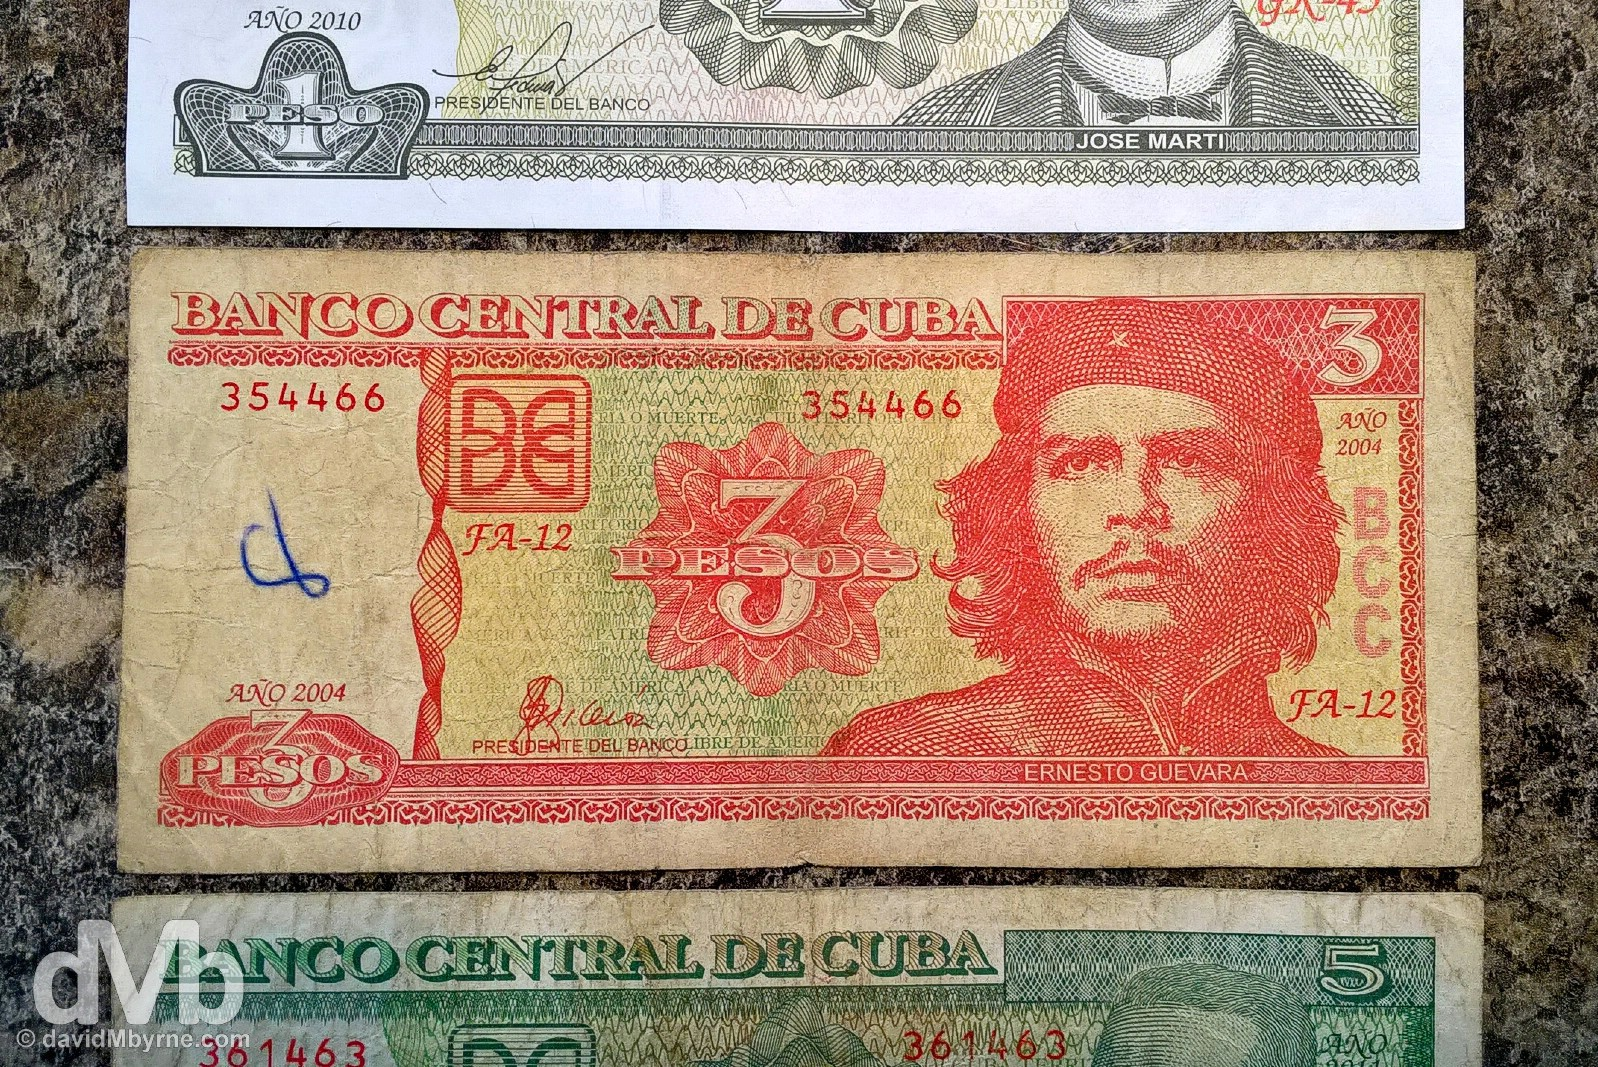 Cuban pesos, MN, moneda nacional. Barely worth the paper it's printed on.